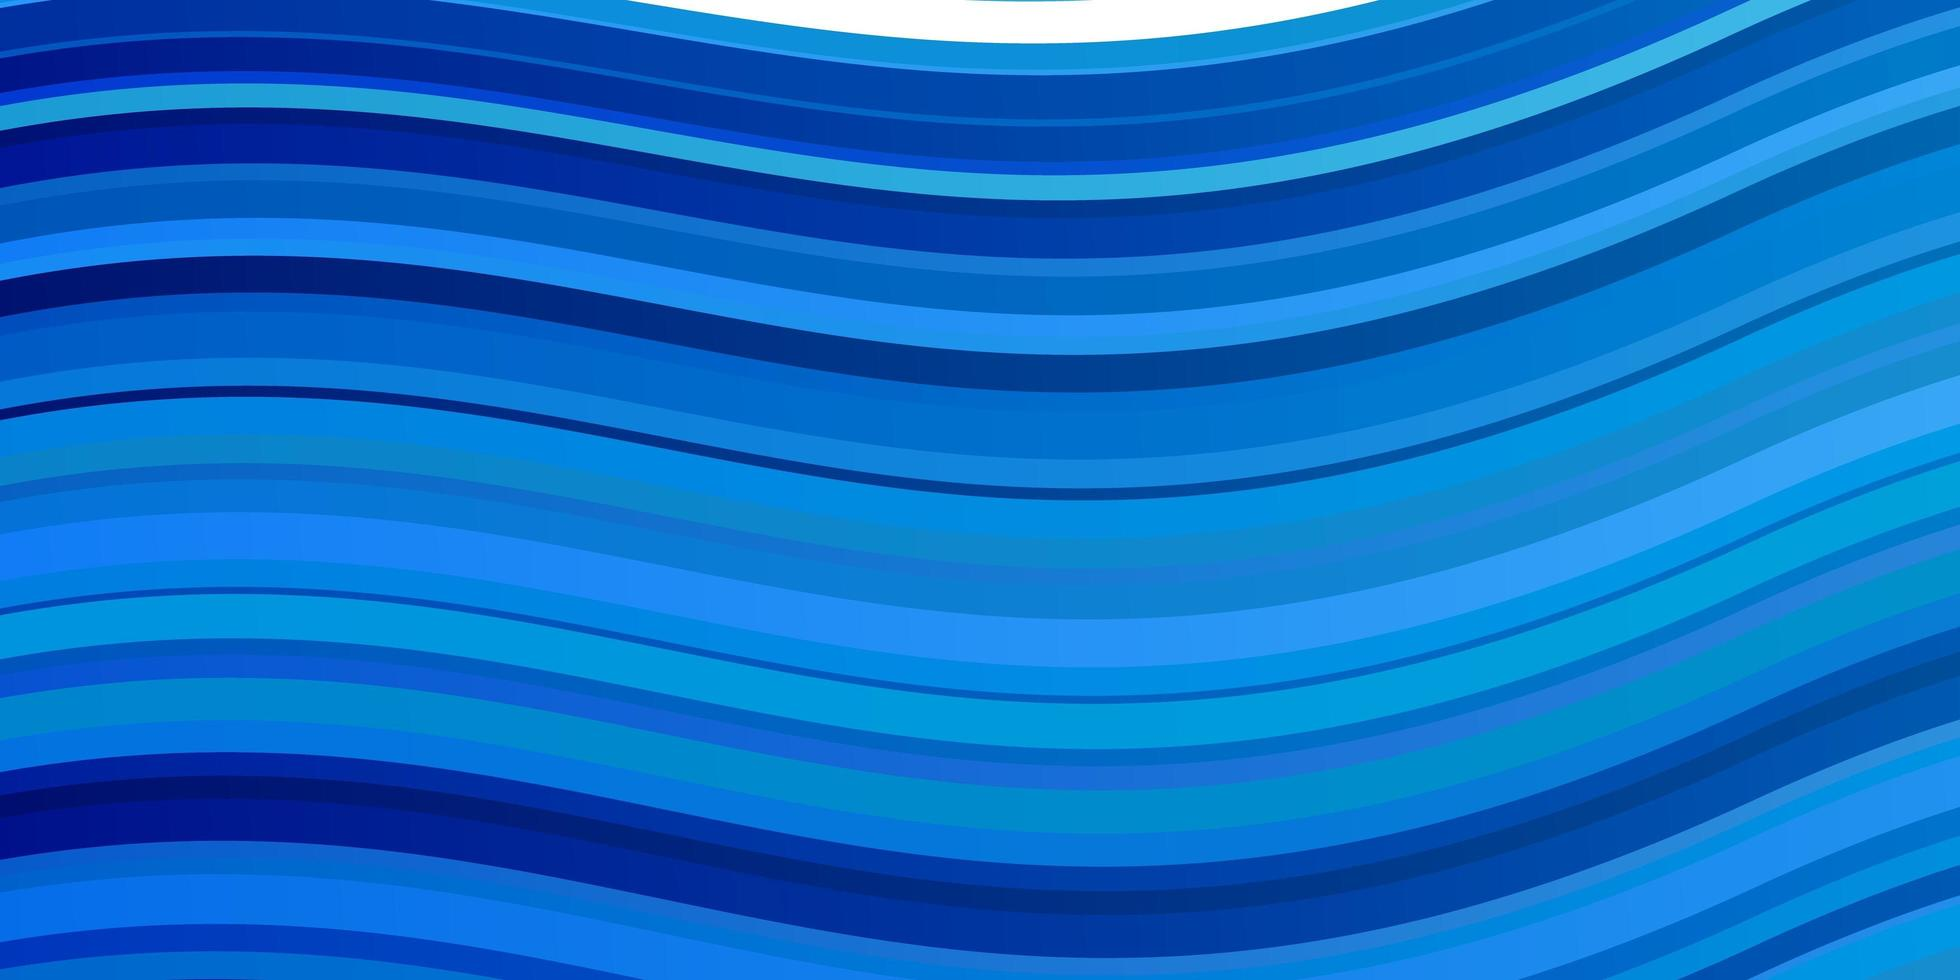 Light BLUE vector background with bent lines.